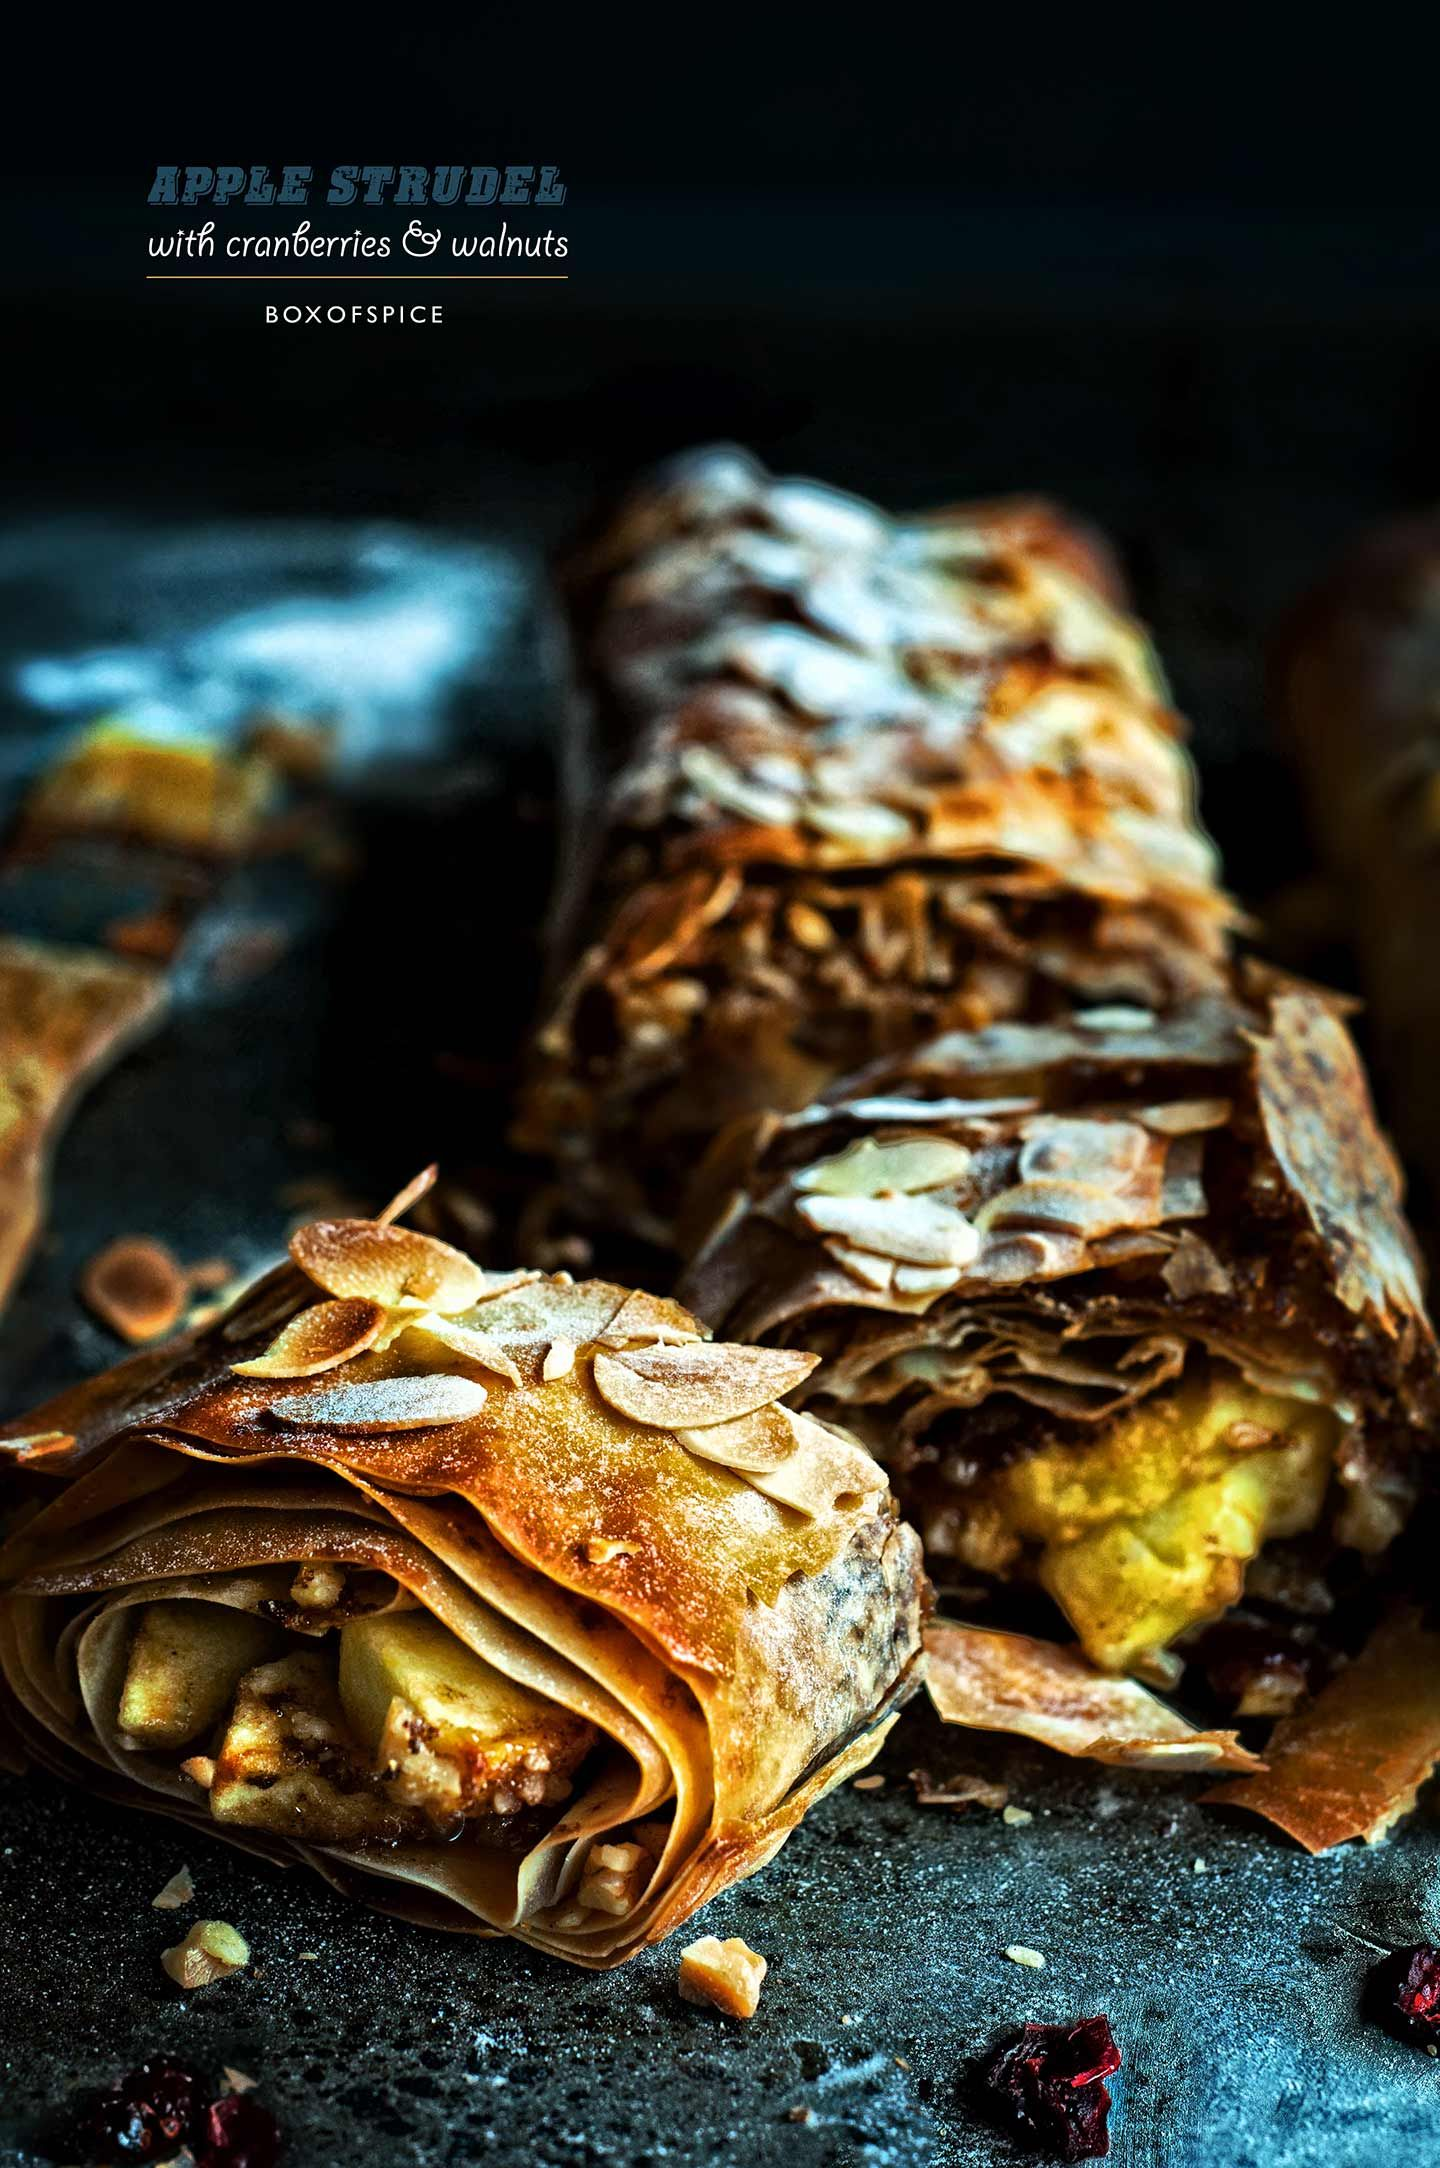 Apple Strudel from Box Of Spice